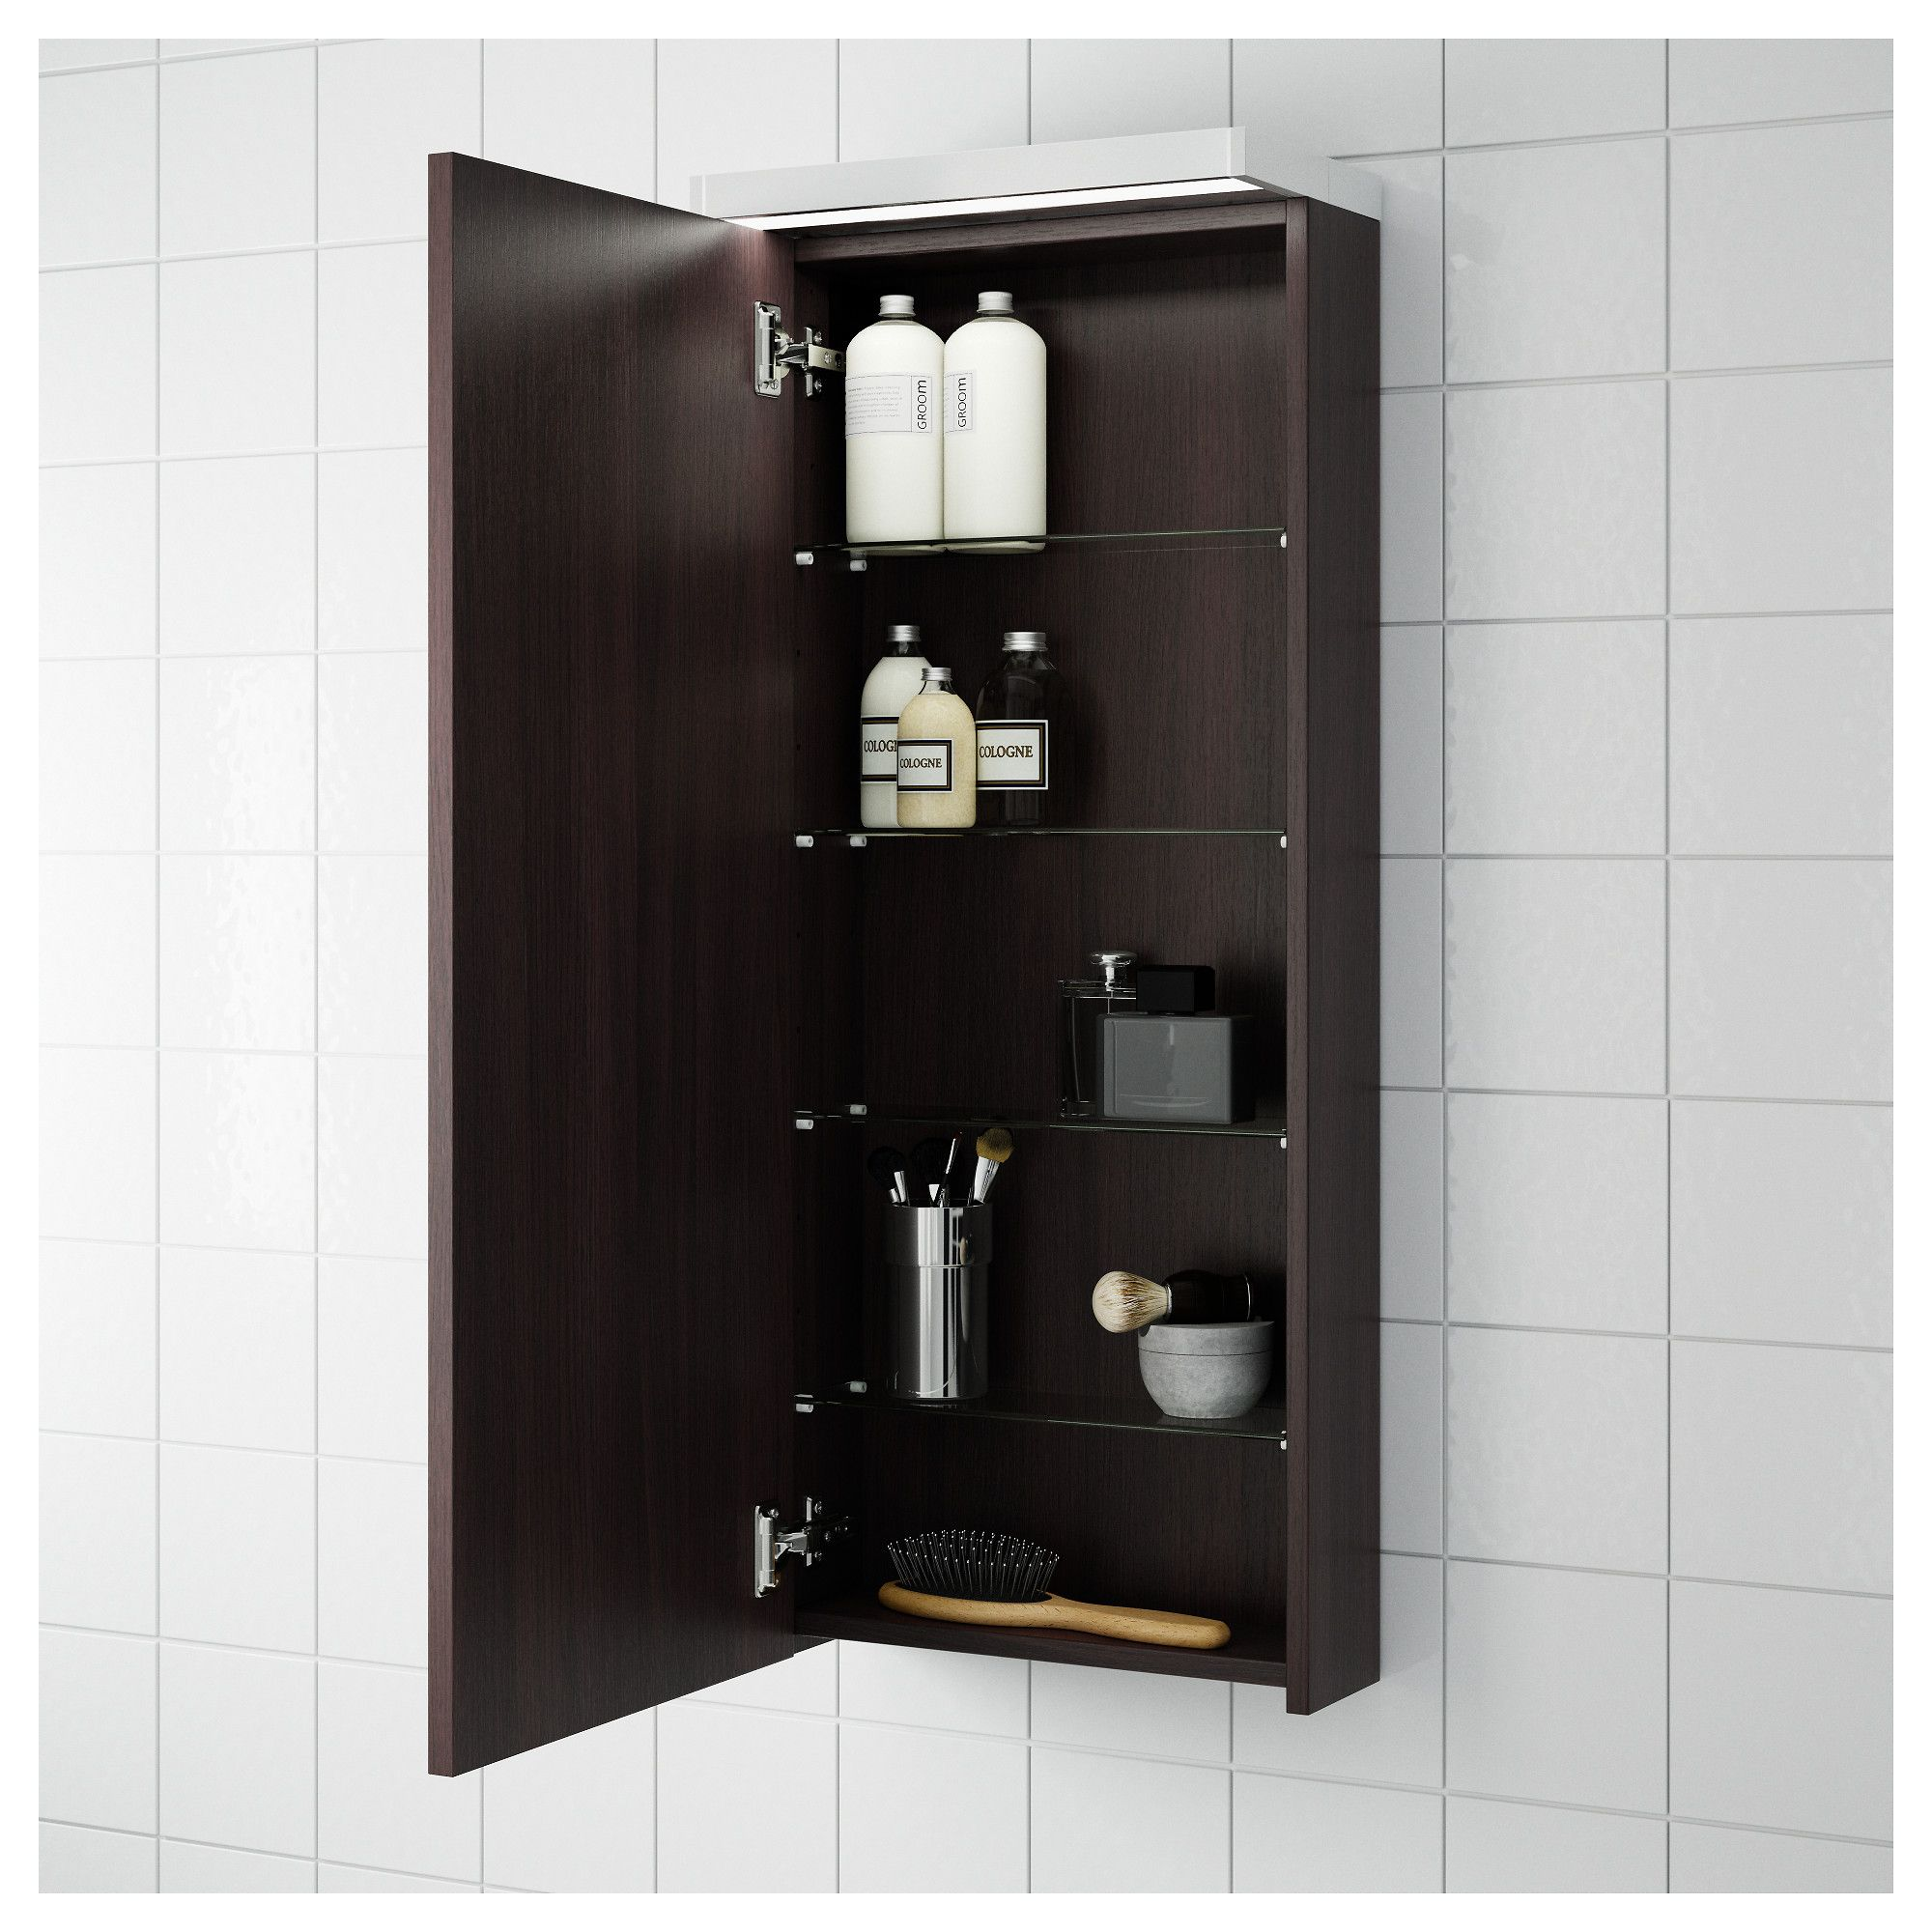 Ikea Kitchen Wall Storage: GODMORGON Wall Cabinet With 1 Door Black-brown In